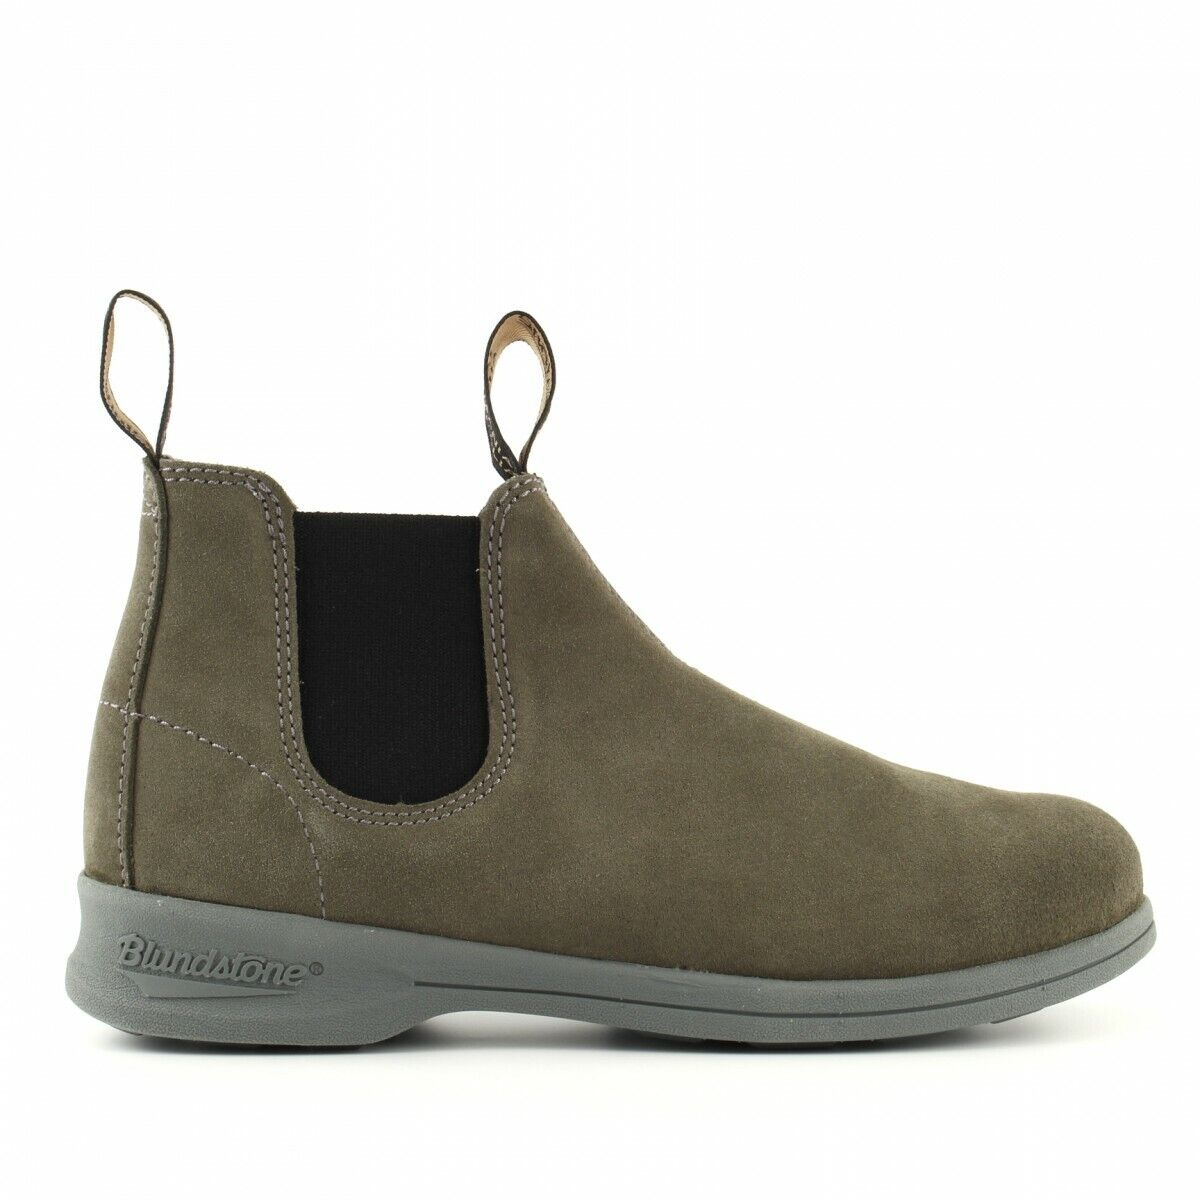 New BlauNDSTONE Style 1397 For Mens Summer Series Olive Grün Suede Ankle Stiefel